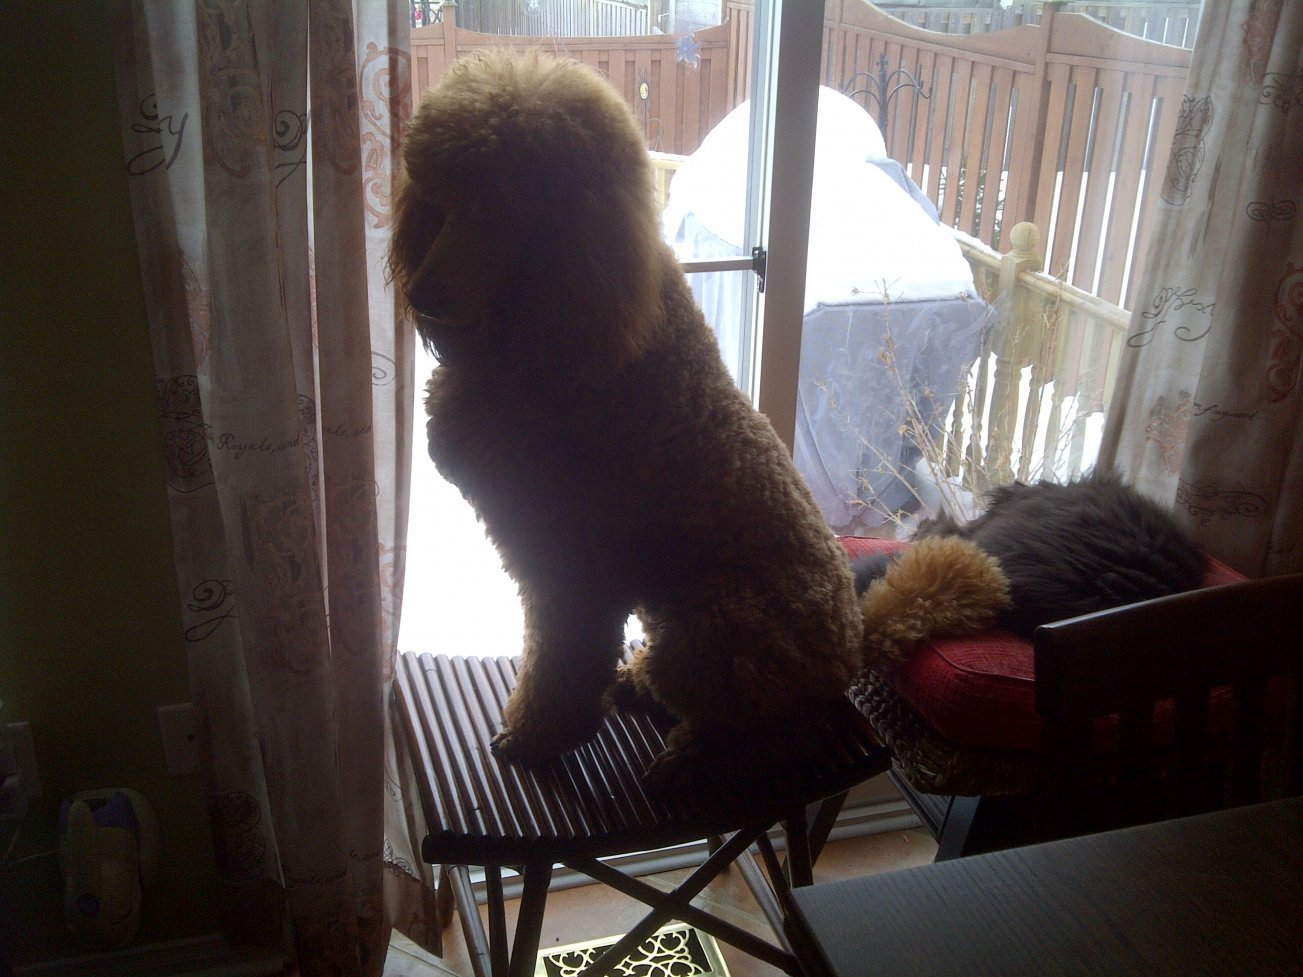 When the dog doesn't fit on the Ottoman-finnegan-feb-2011-1-.jpg